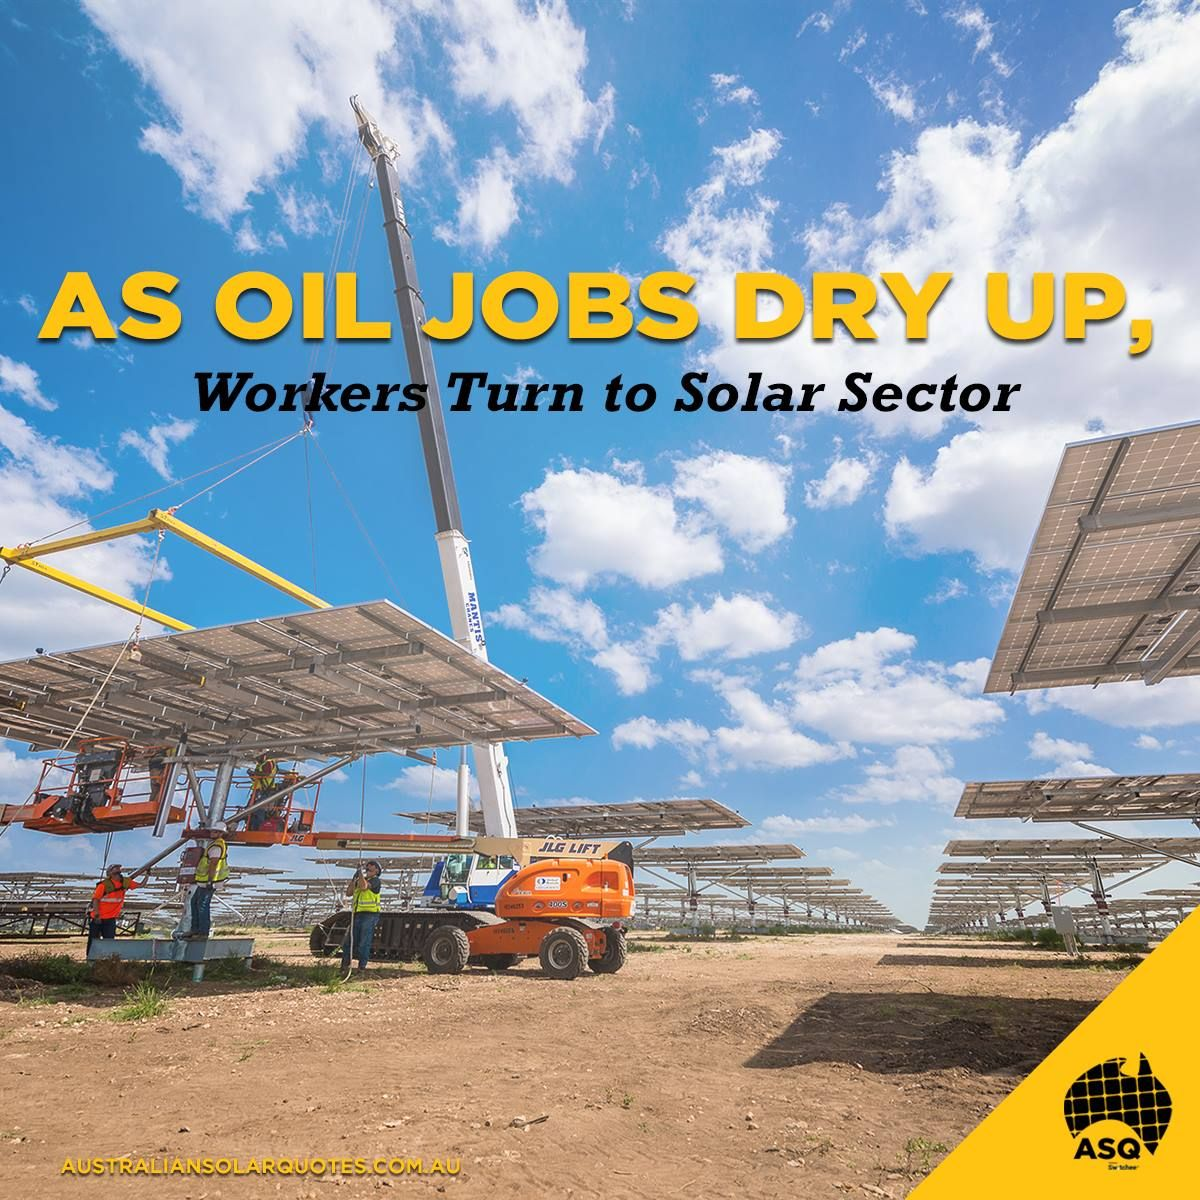 Burgeoning #solar projects offer opportunities for out-of-work rig hands, roustabouts and pipe fitters | http://asq.site/gj6pi #ASQ